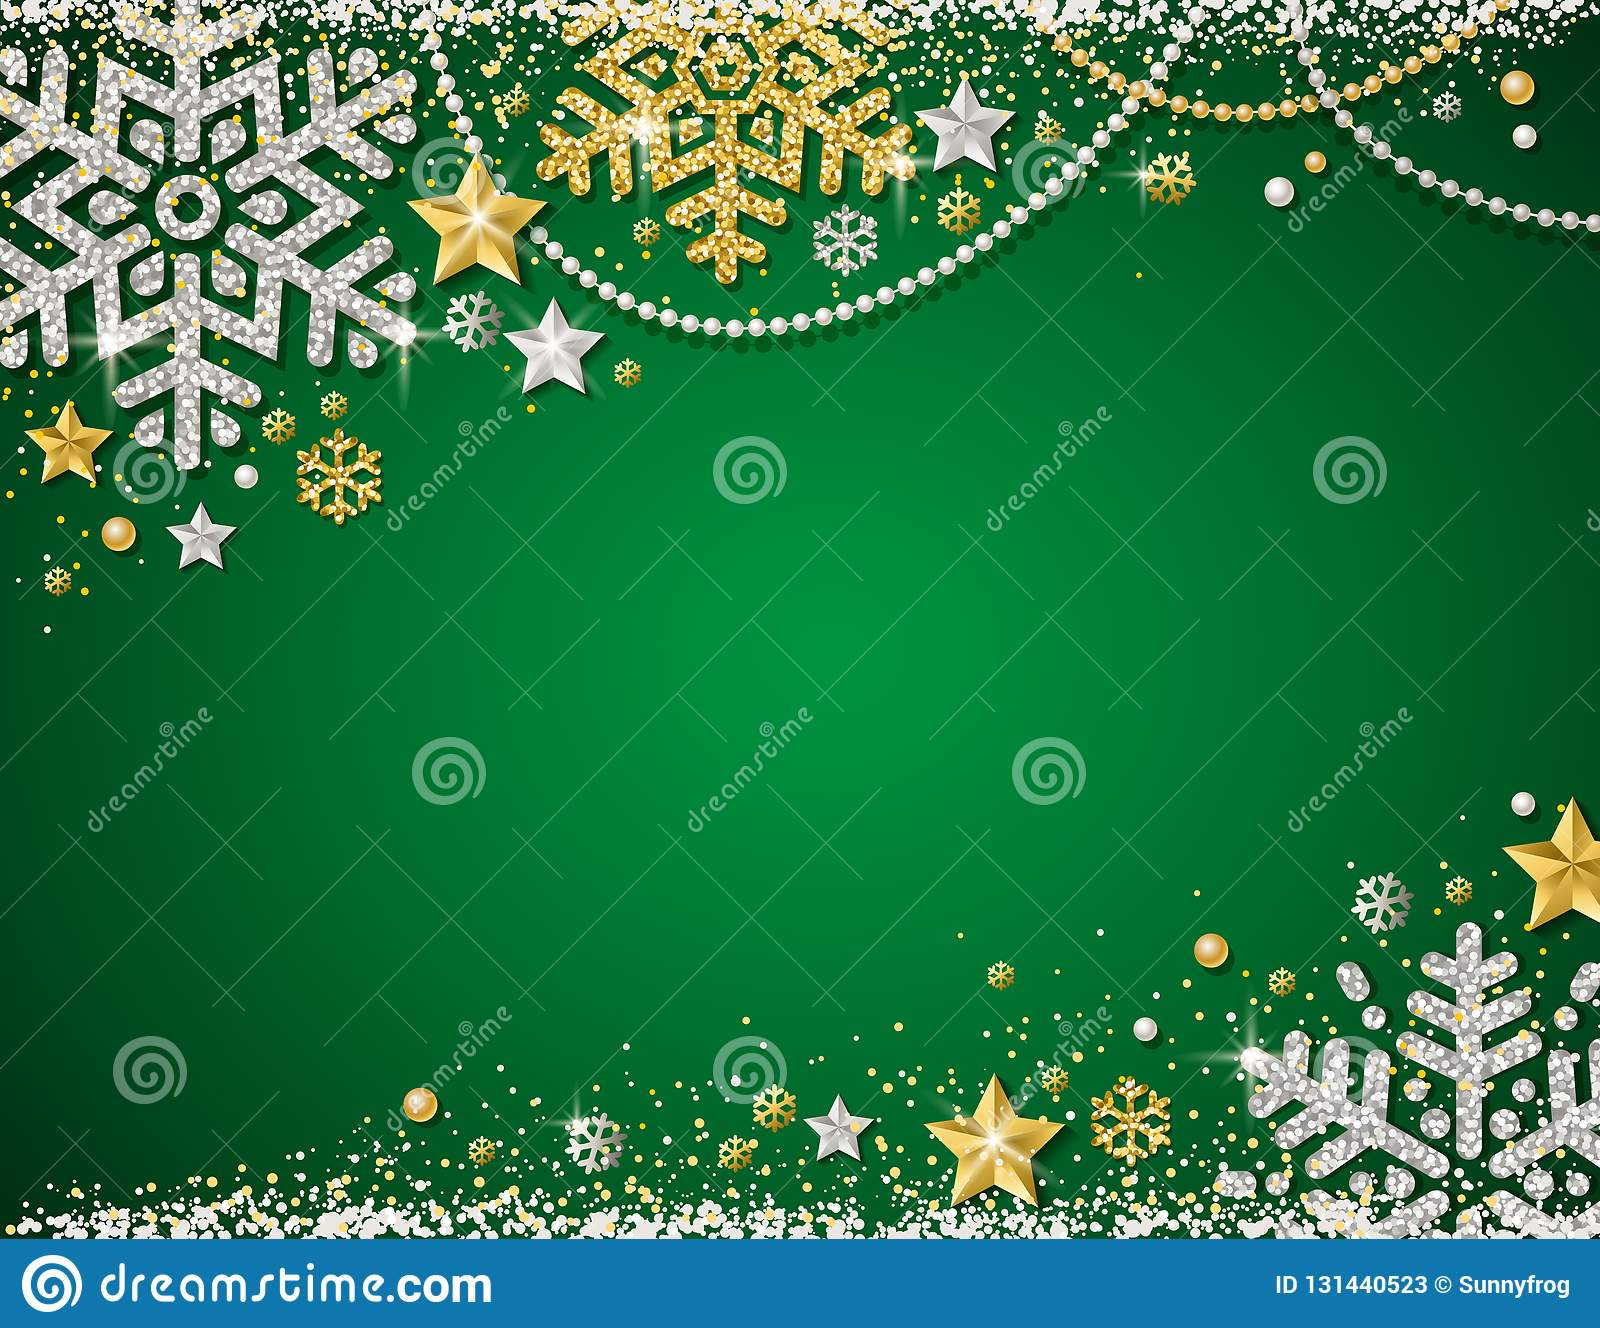 Green christmas background with frame of golden and silver glittering snowflakes, stars and garlands, vector